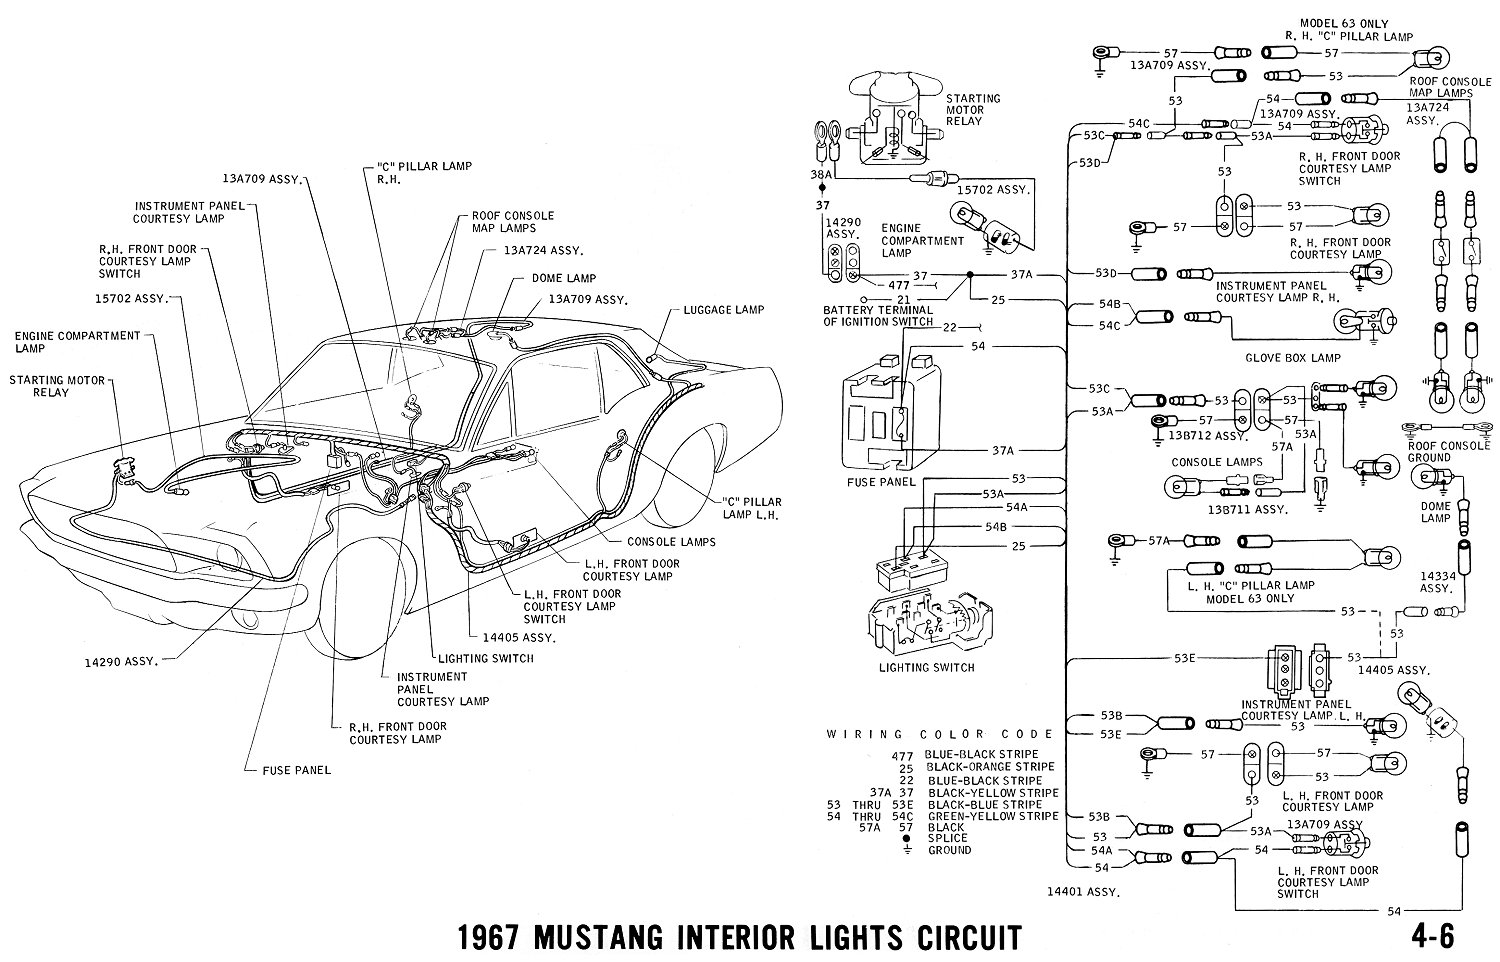 Wondrous 1967 Mustang Wiring And Vacuum Diagrams Average Joe Restoration Wiring Cloud Itislusmarecoveryedborg